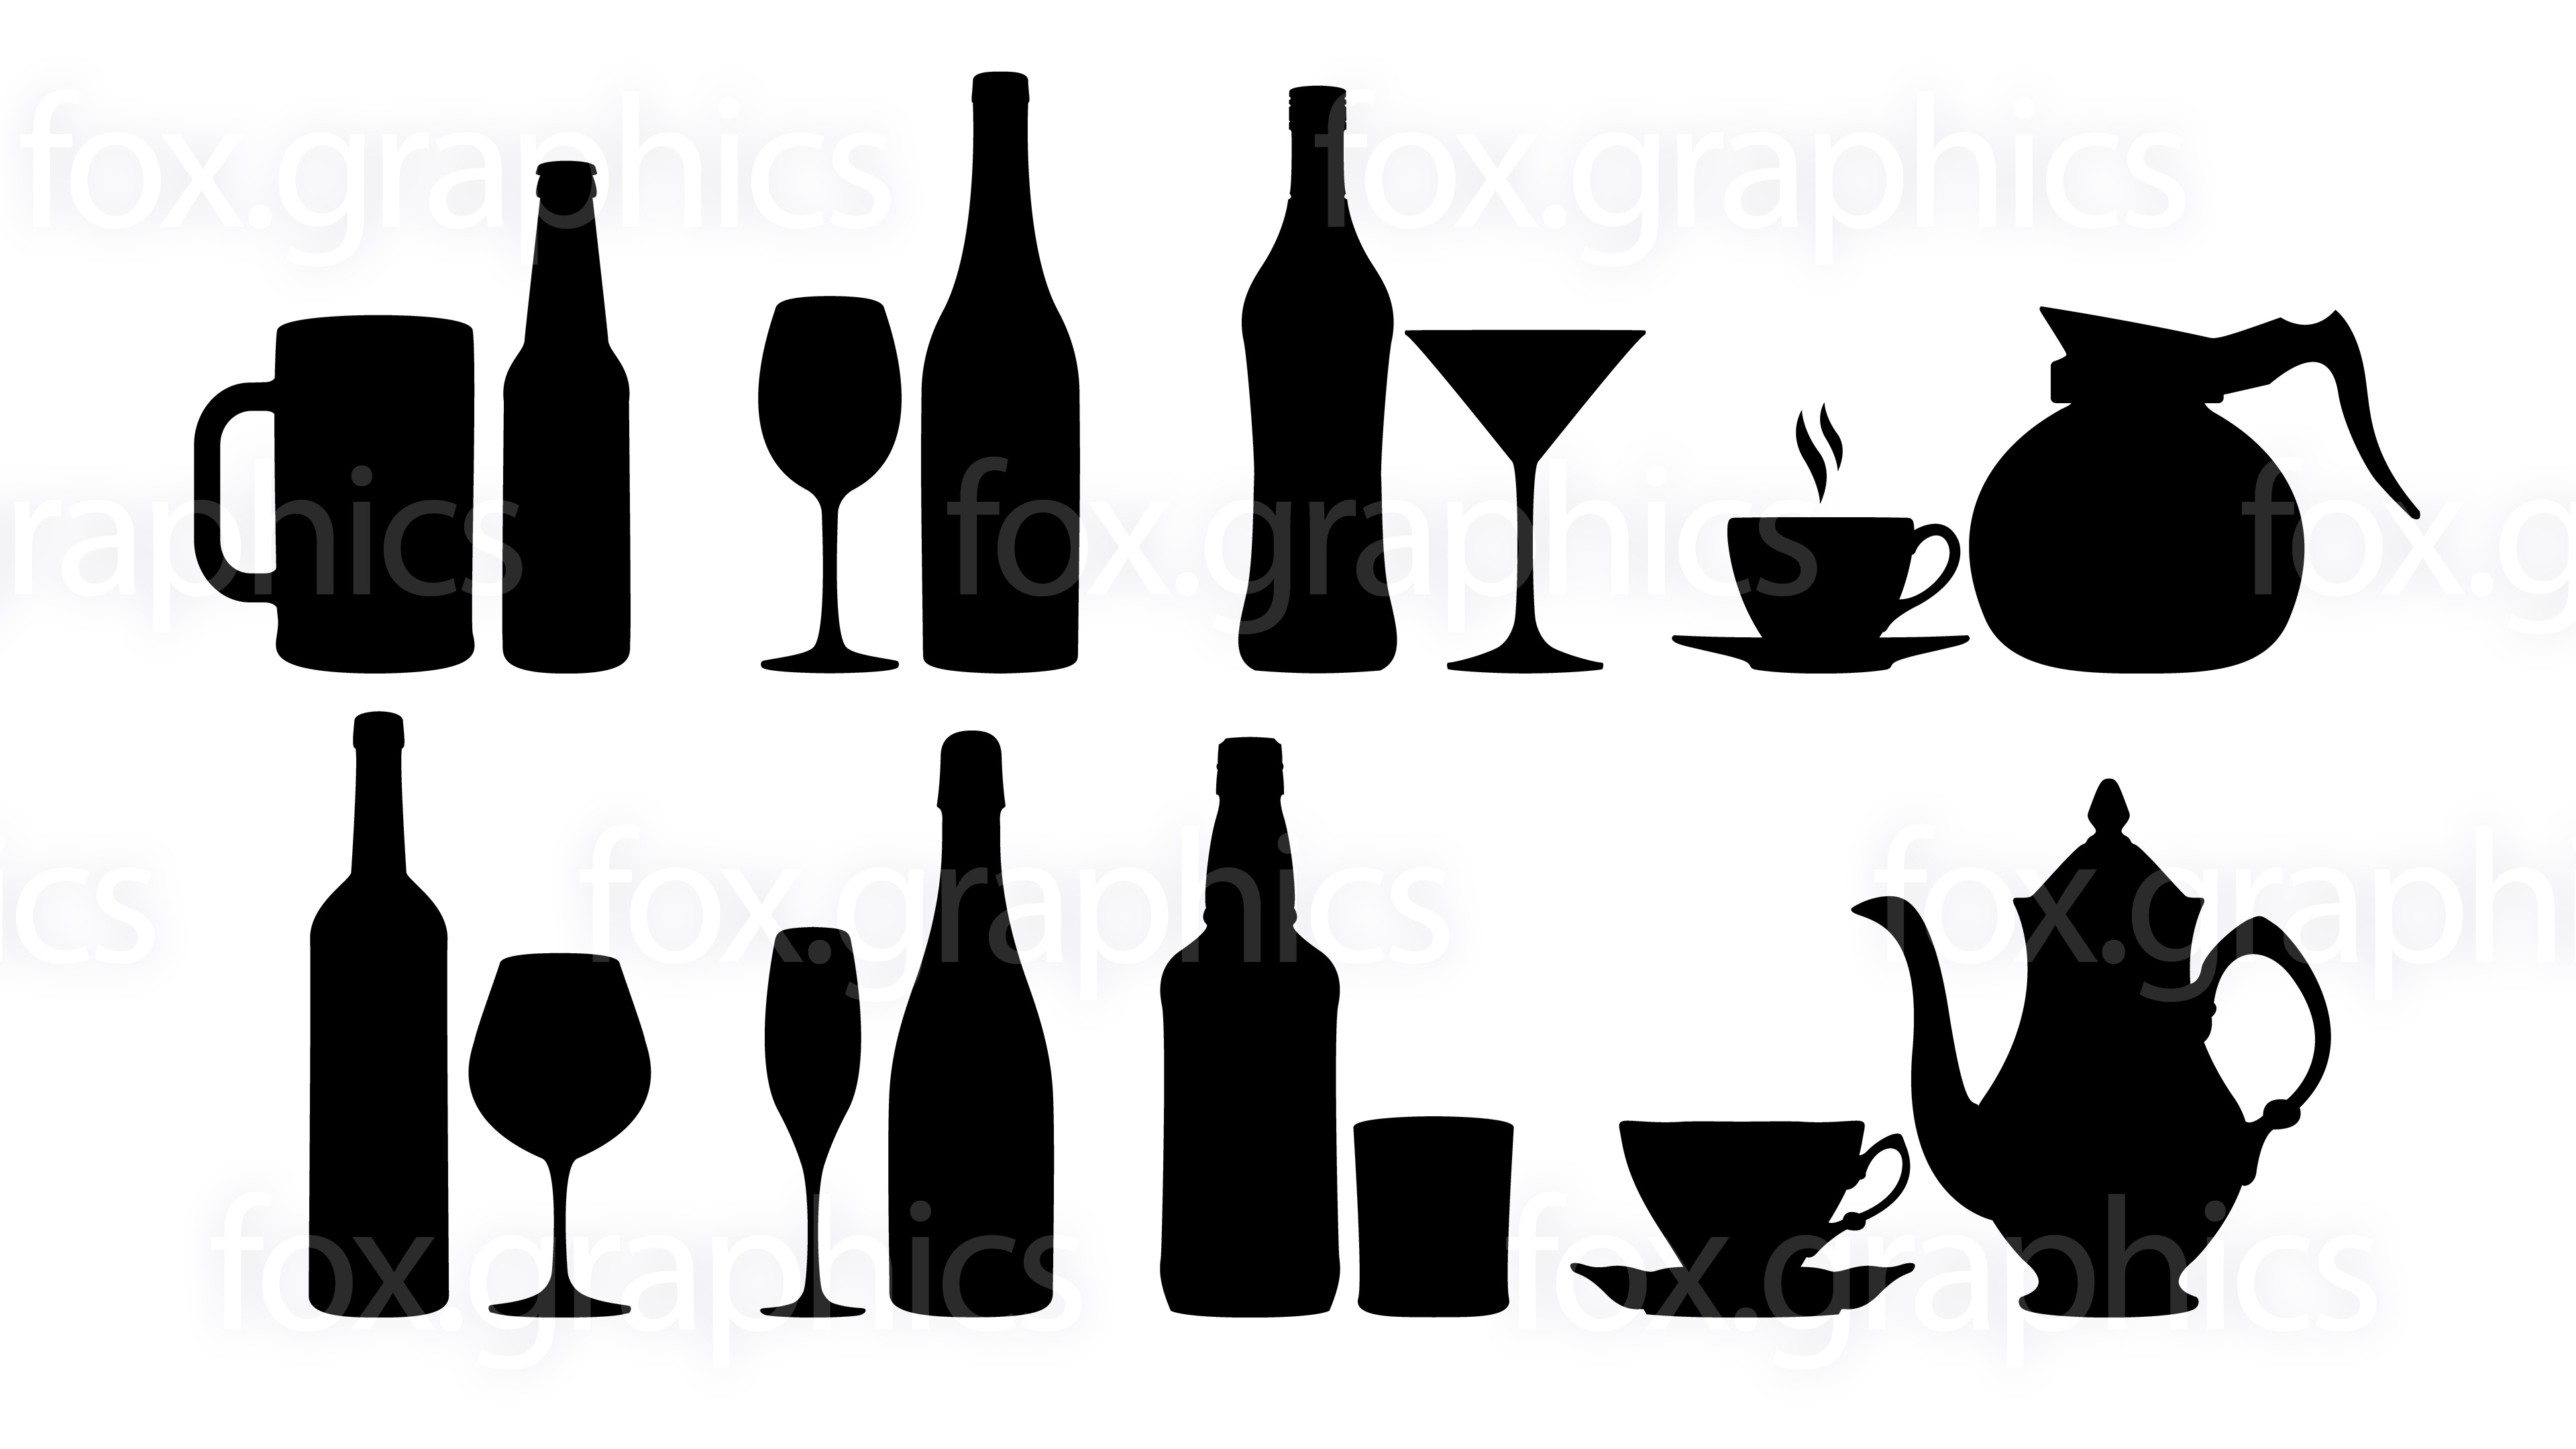 3840x2160 Bottles, Glasses And Cups Vector Symbols